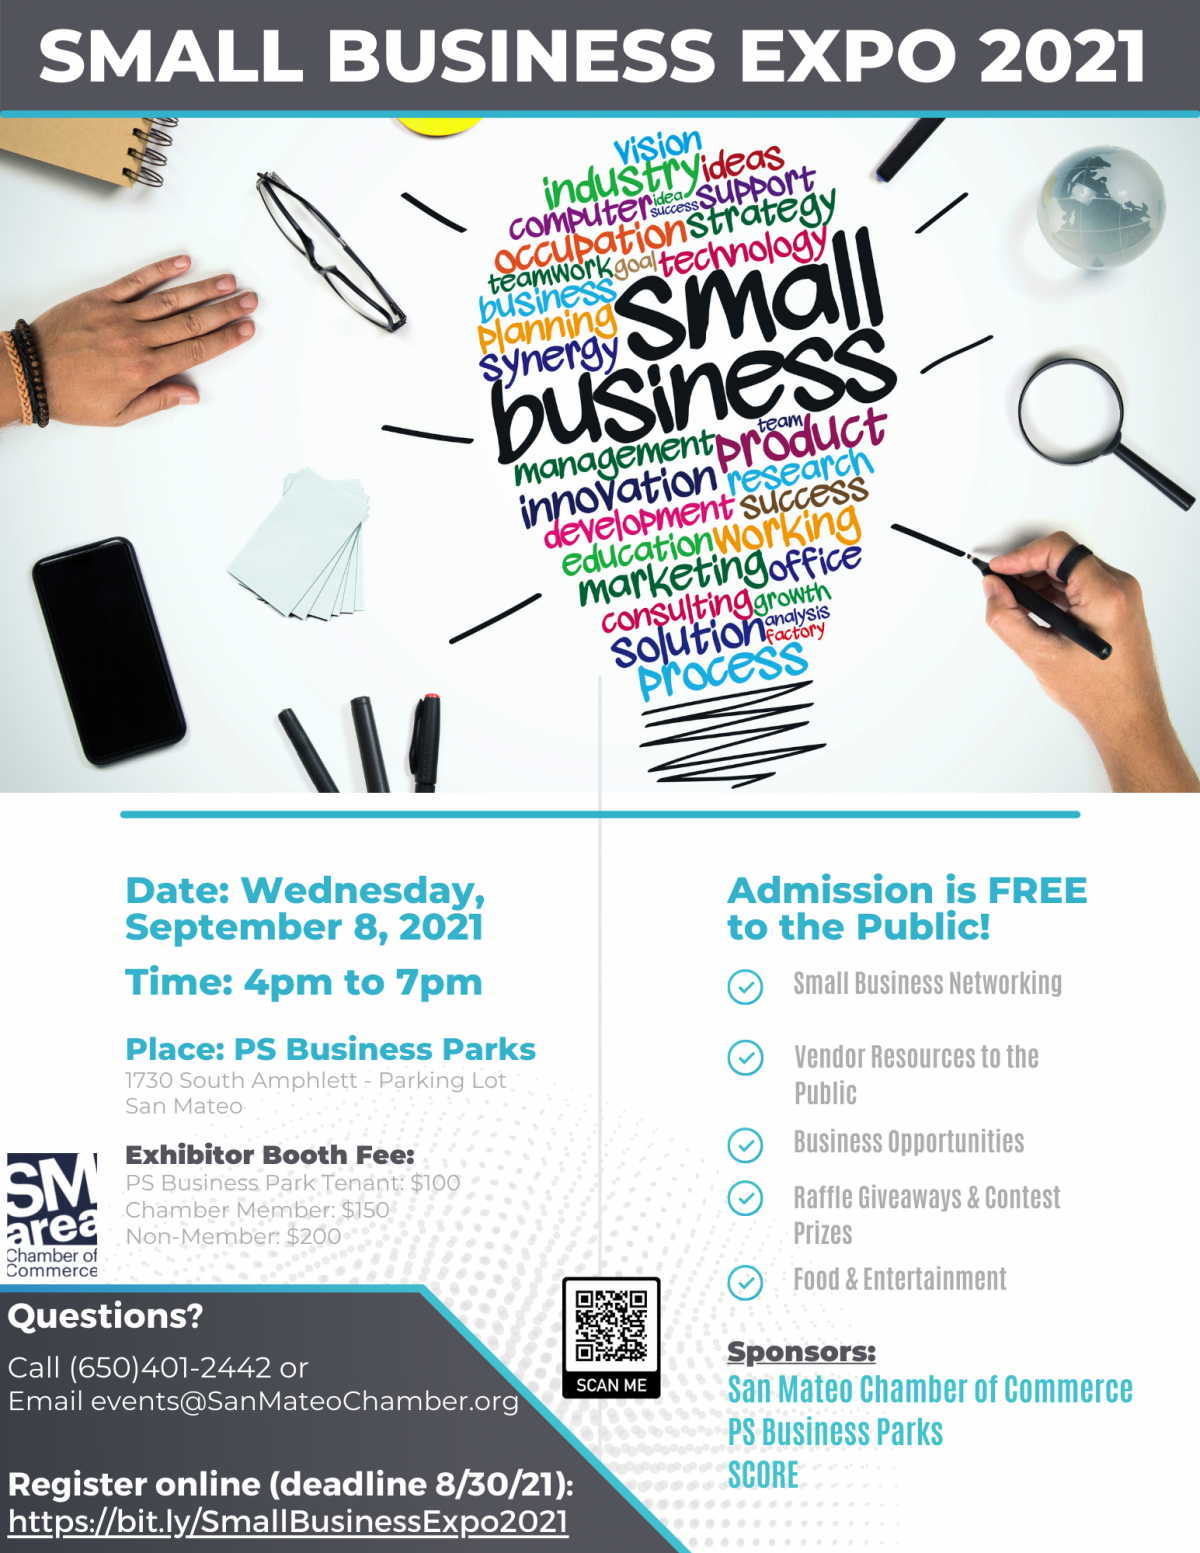 Small Business Marketing Services Flyer